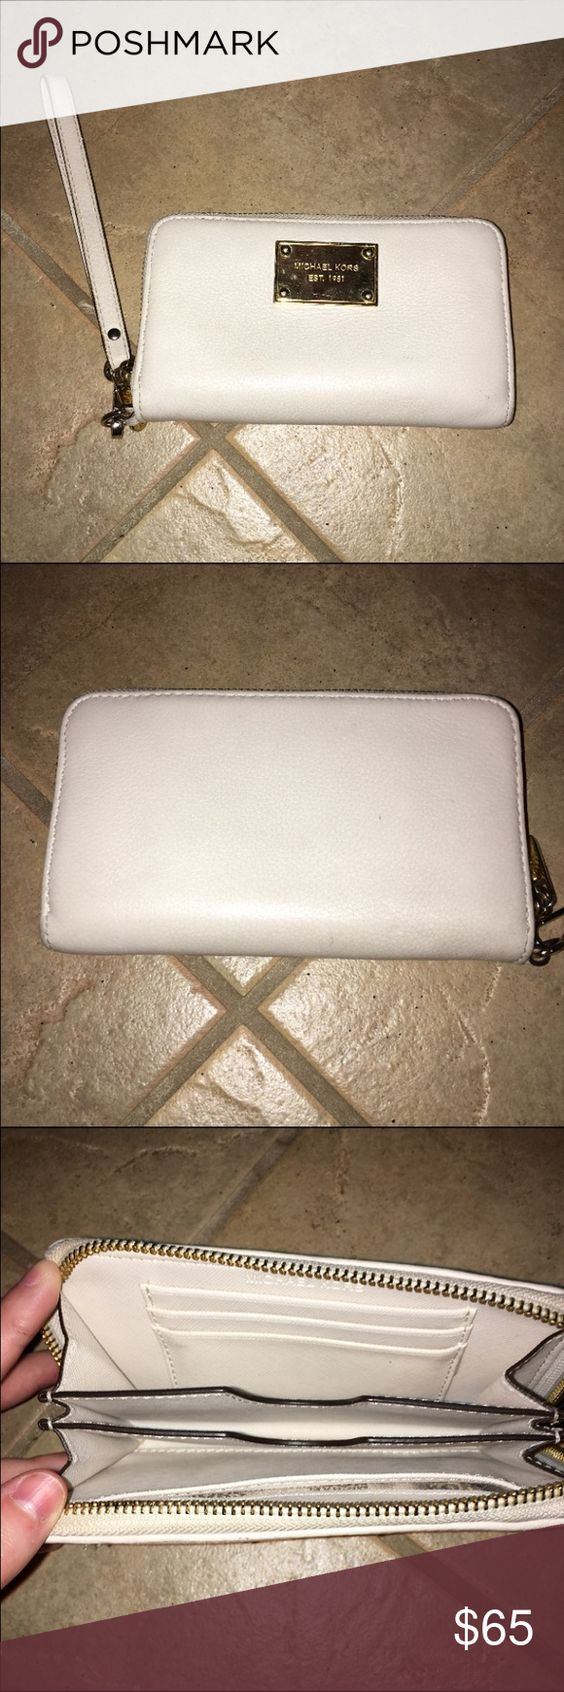 Michael Kors white wallet w/ wrist strap Michael Kors white wallet w/ wrist strap Authentic MK White wallet  Lightly used still in great condition 7 in X 4 in X 1 in Michael Kors Bags Wallets